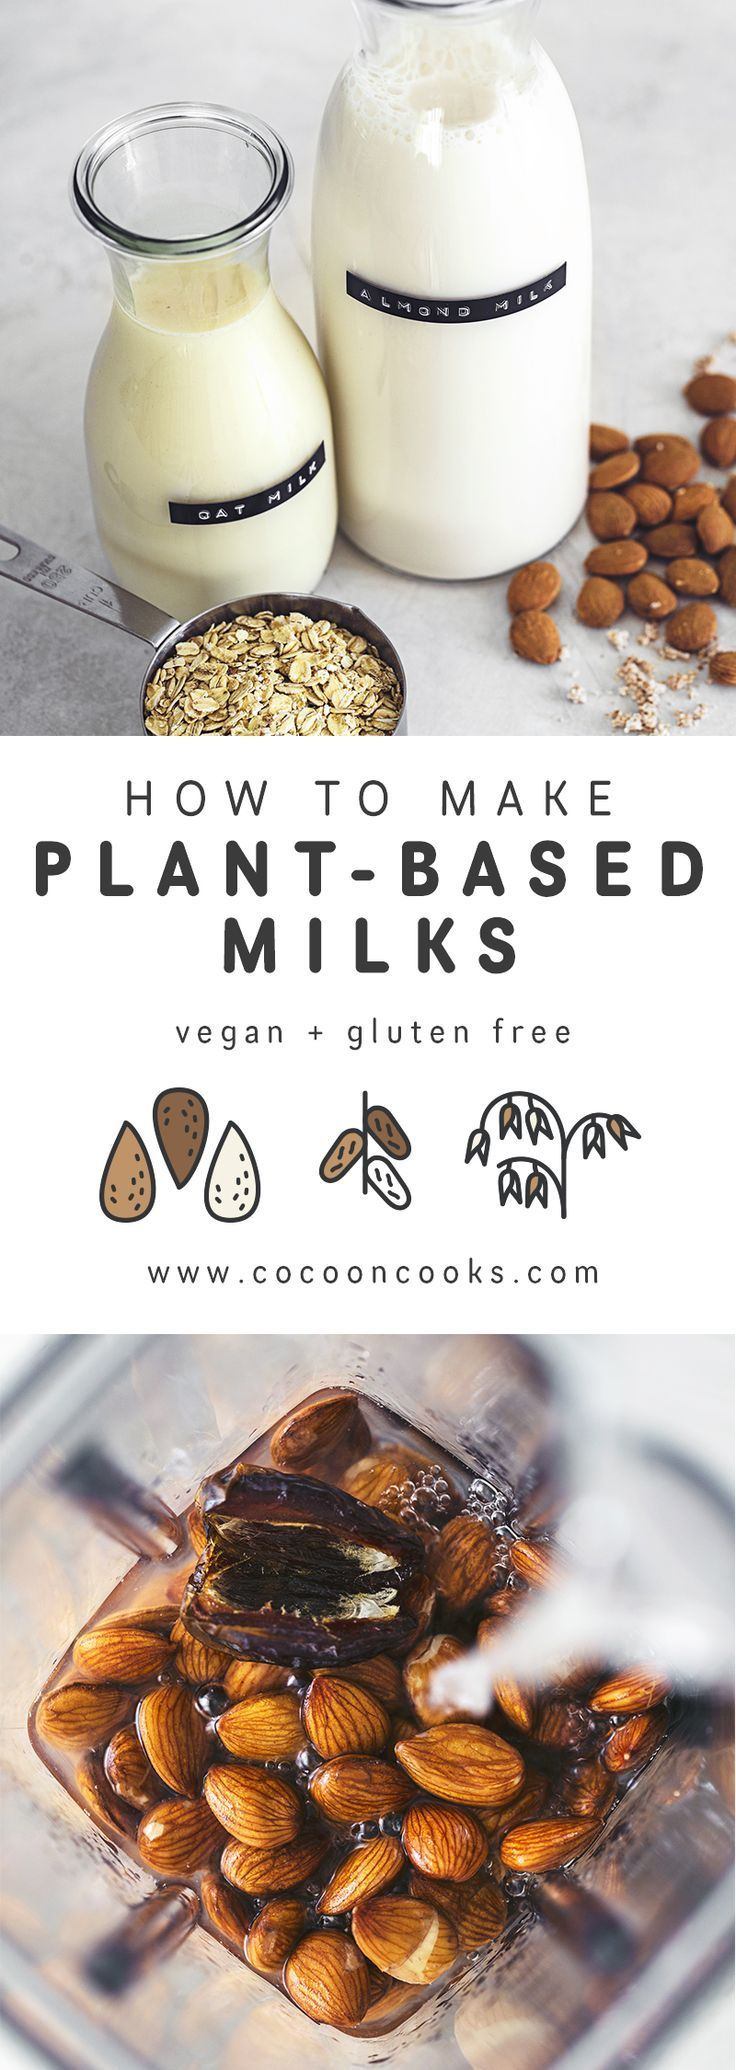 How to make Plant-based Milk (Almond & Oat)